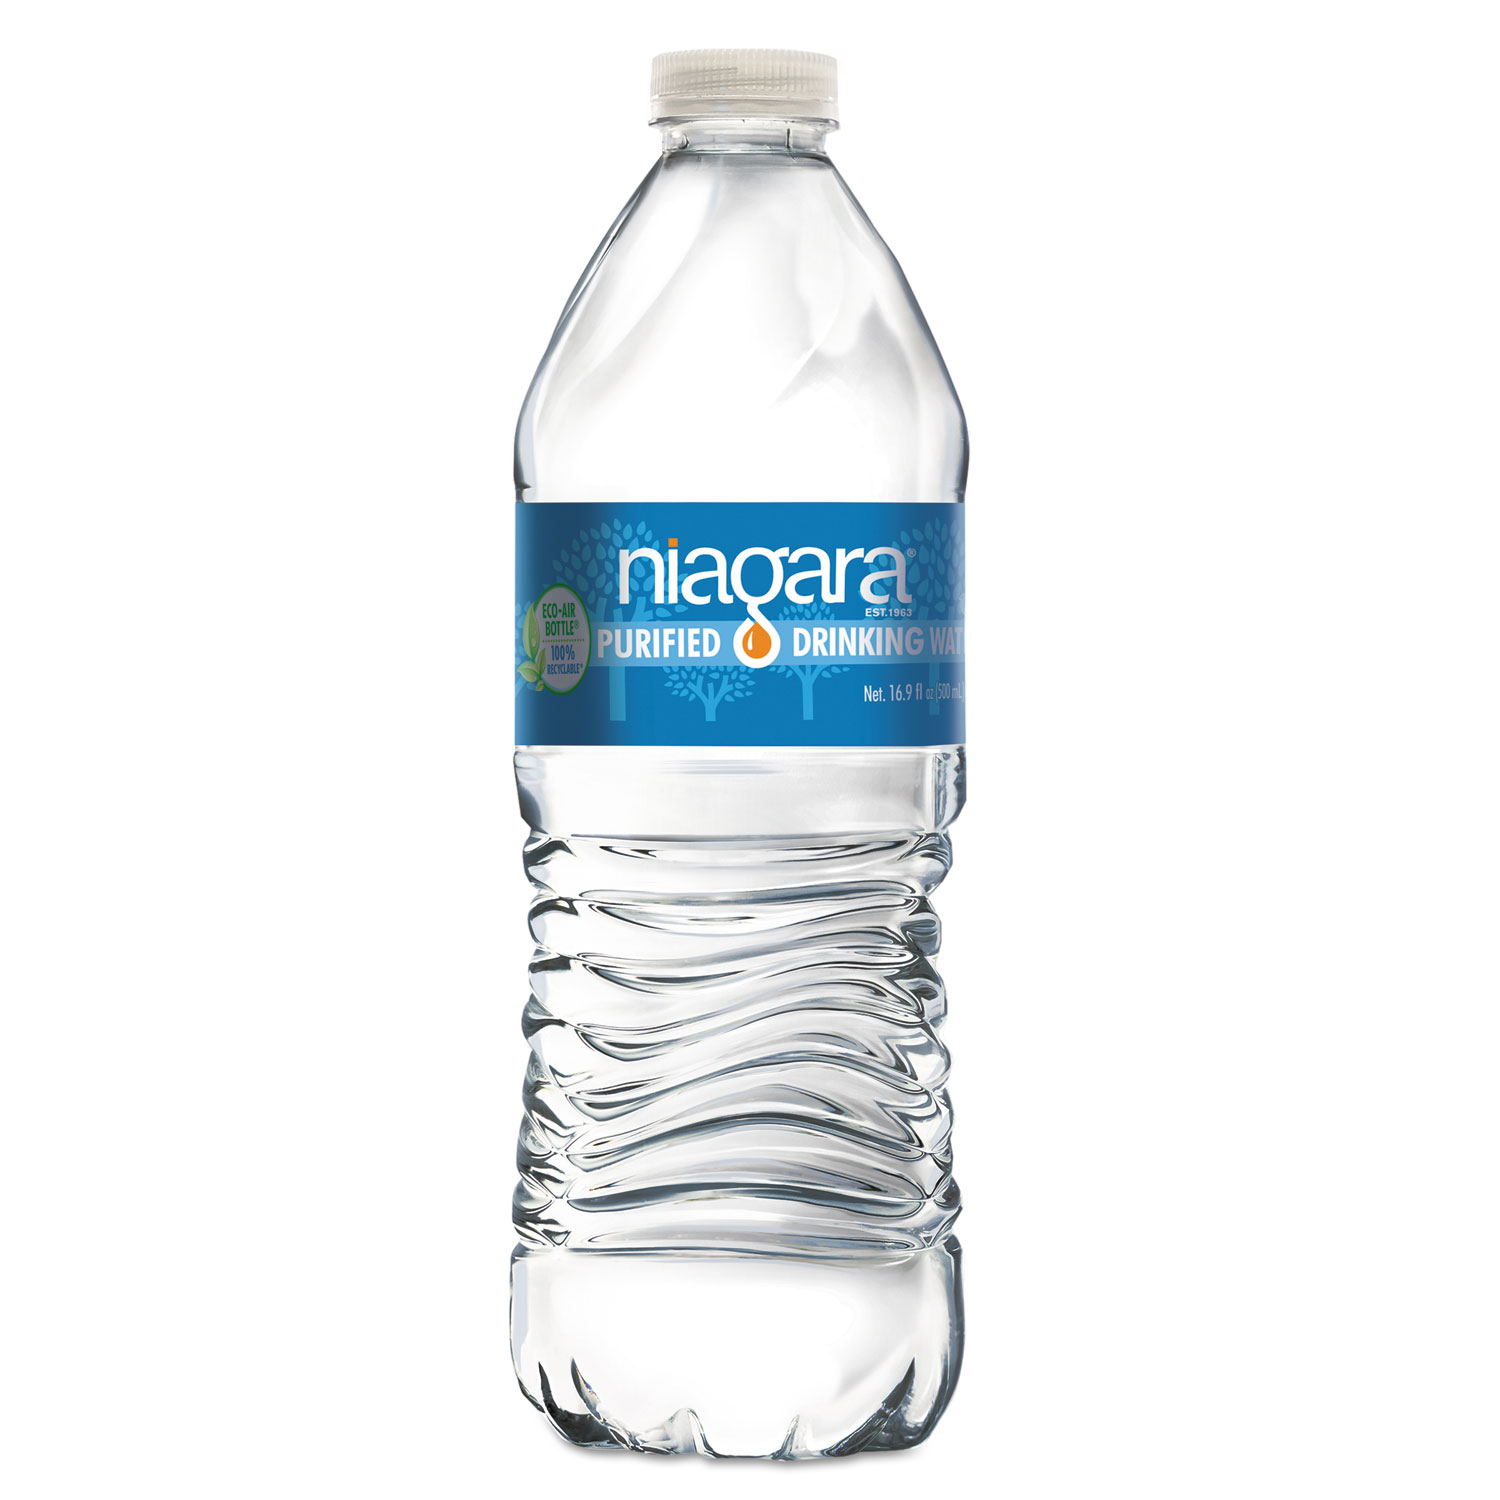 Purifying Drinking Water Purified Drinking Water By Niagaraar Bottling Ngb05l24plt